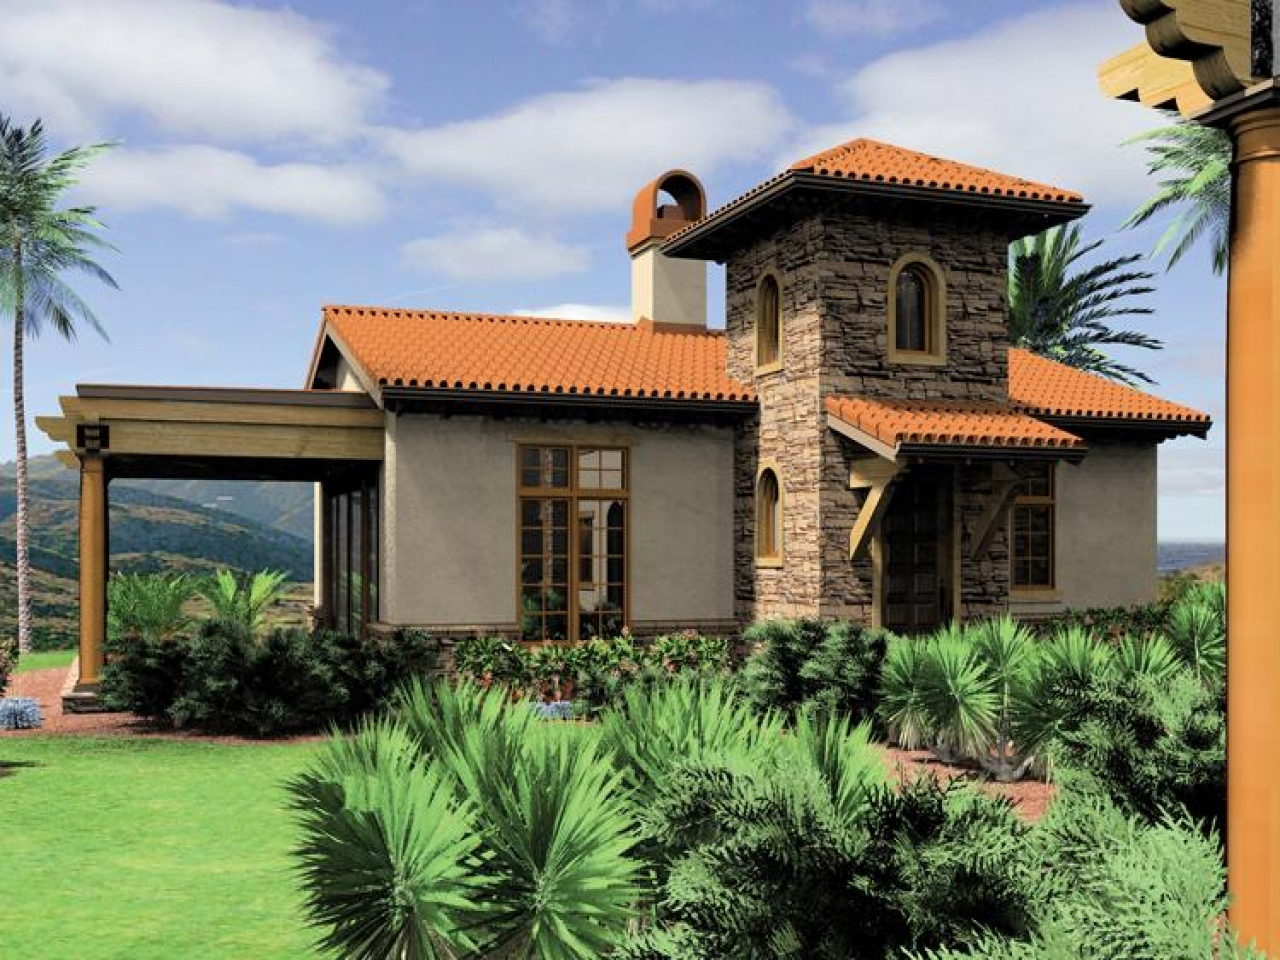 small mediterranean style house plans small mediterranean house plans lrg 24233d7fc621629e - View Small Mediterranean House Plans Images